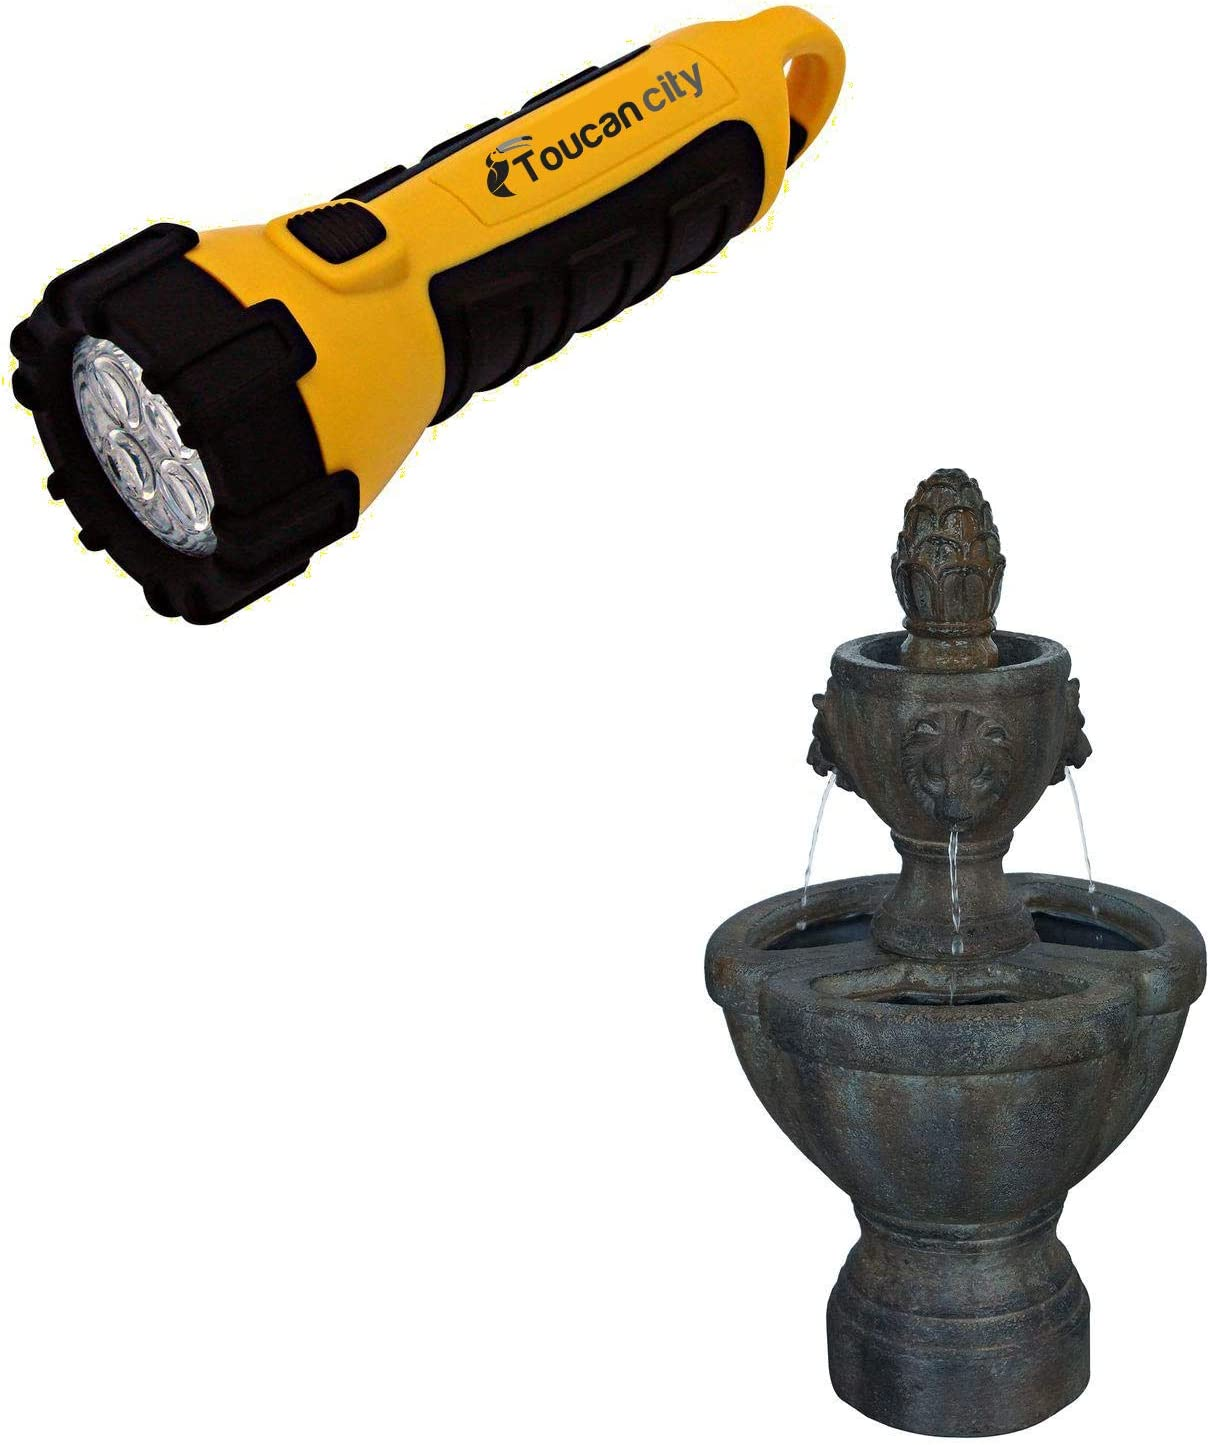 Toucan City LED Flashlight and Pure Garden 32 in. Lion Head Fountain 50-0005